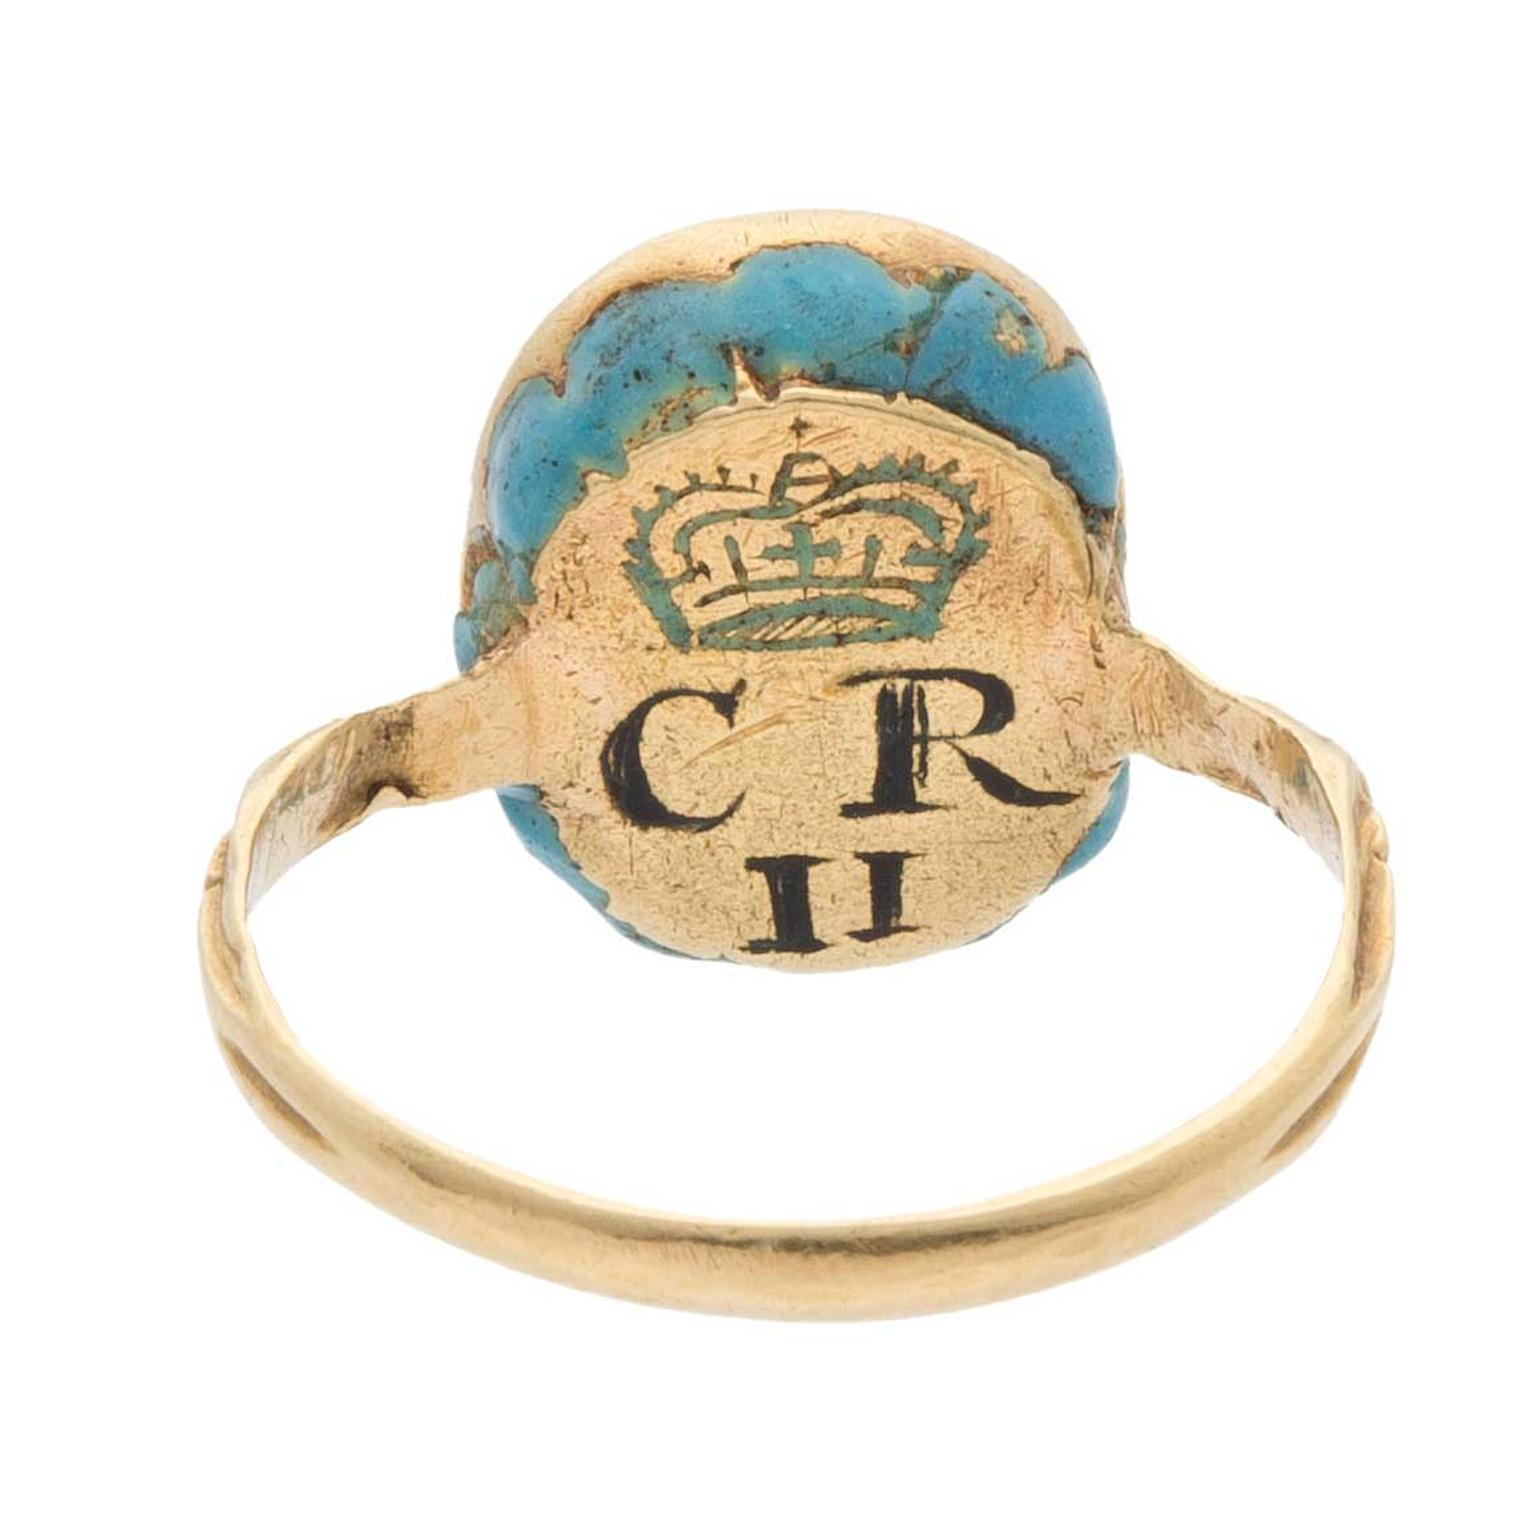 Stuart ring featuring King Charles II back view